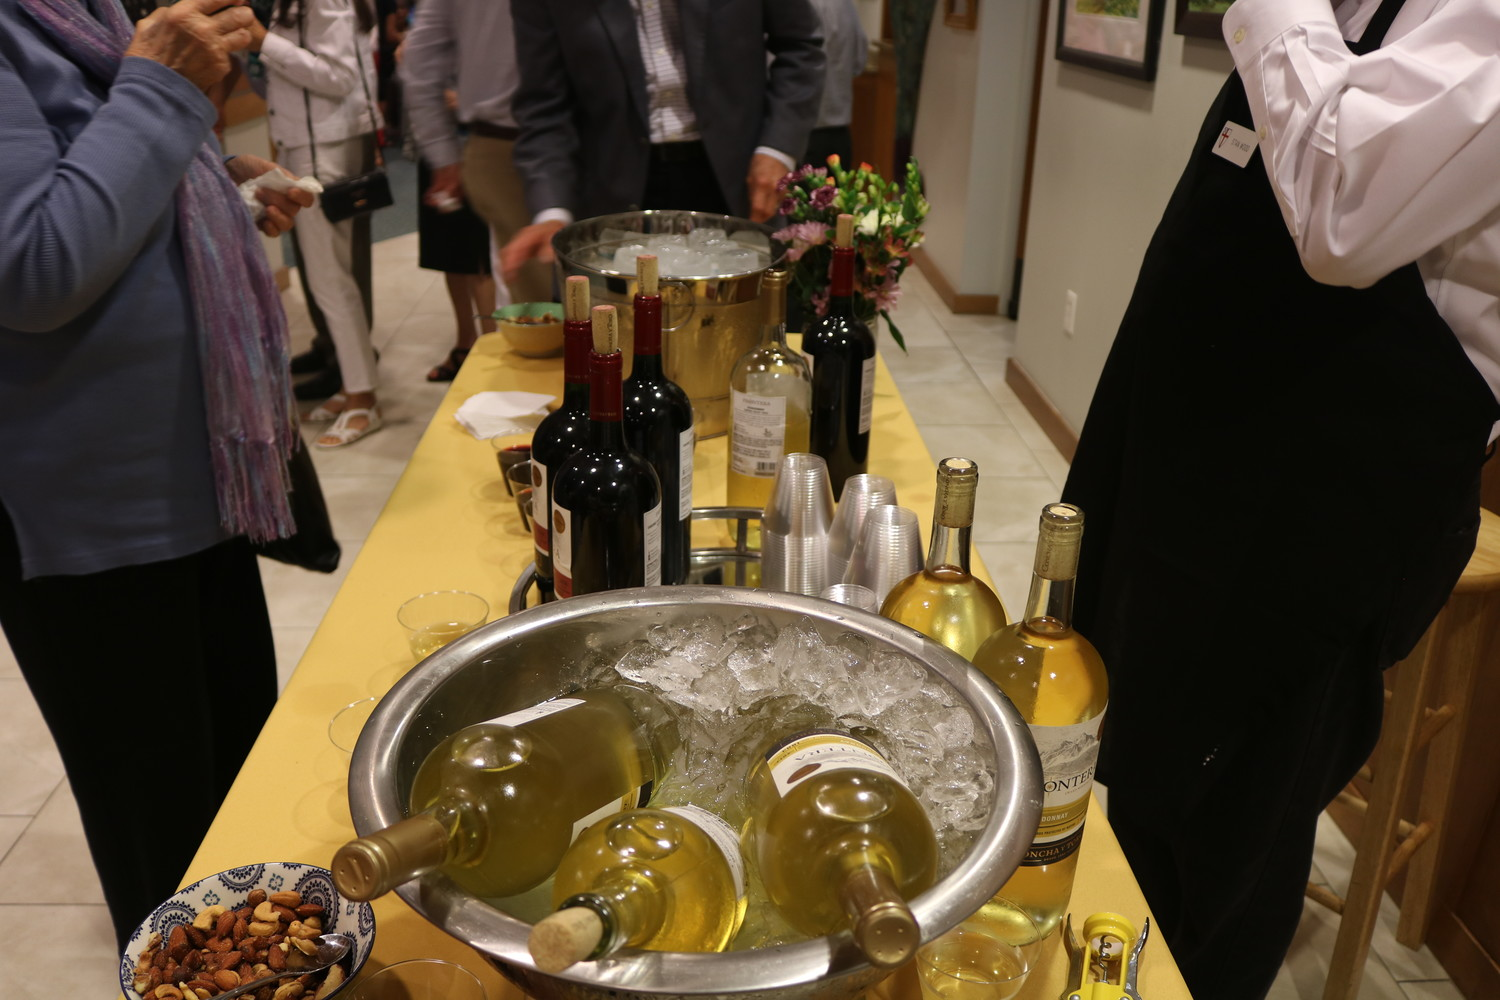 Drinks were available for guests at the reception event following Rev. Westbury's retirement ceremony.